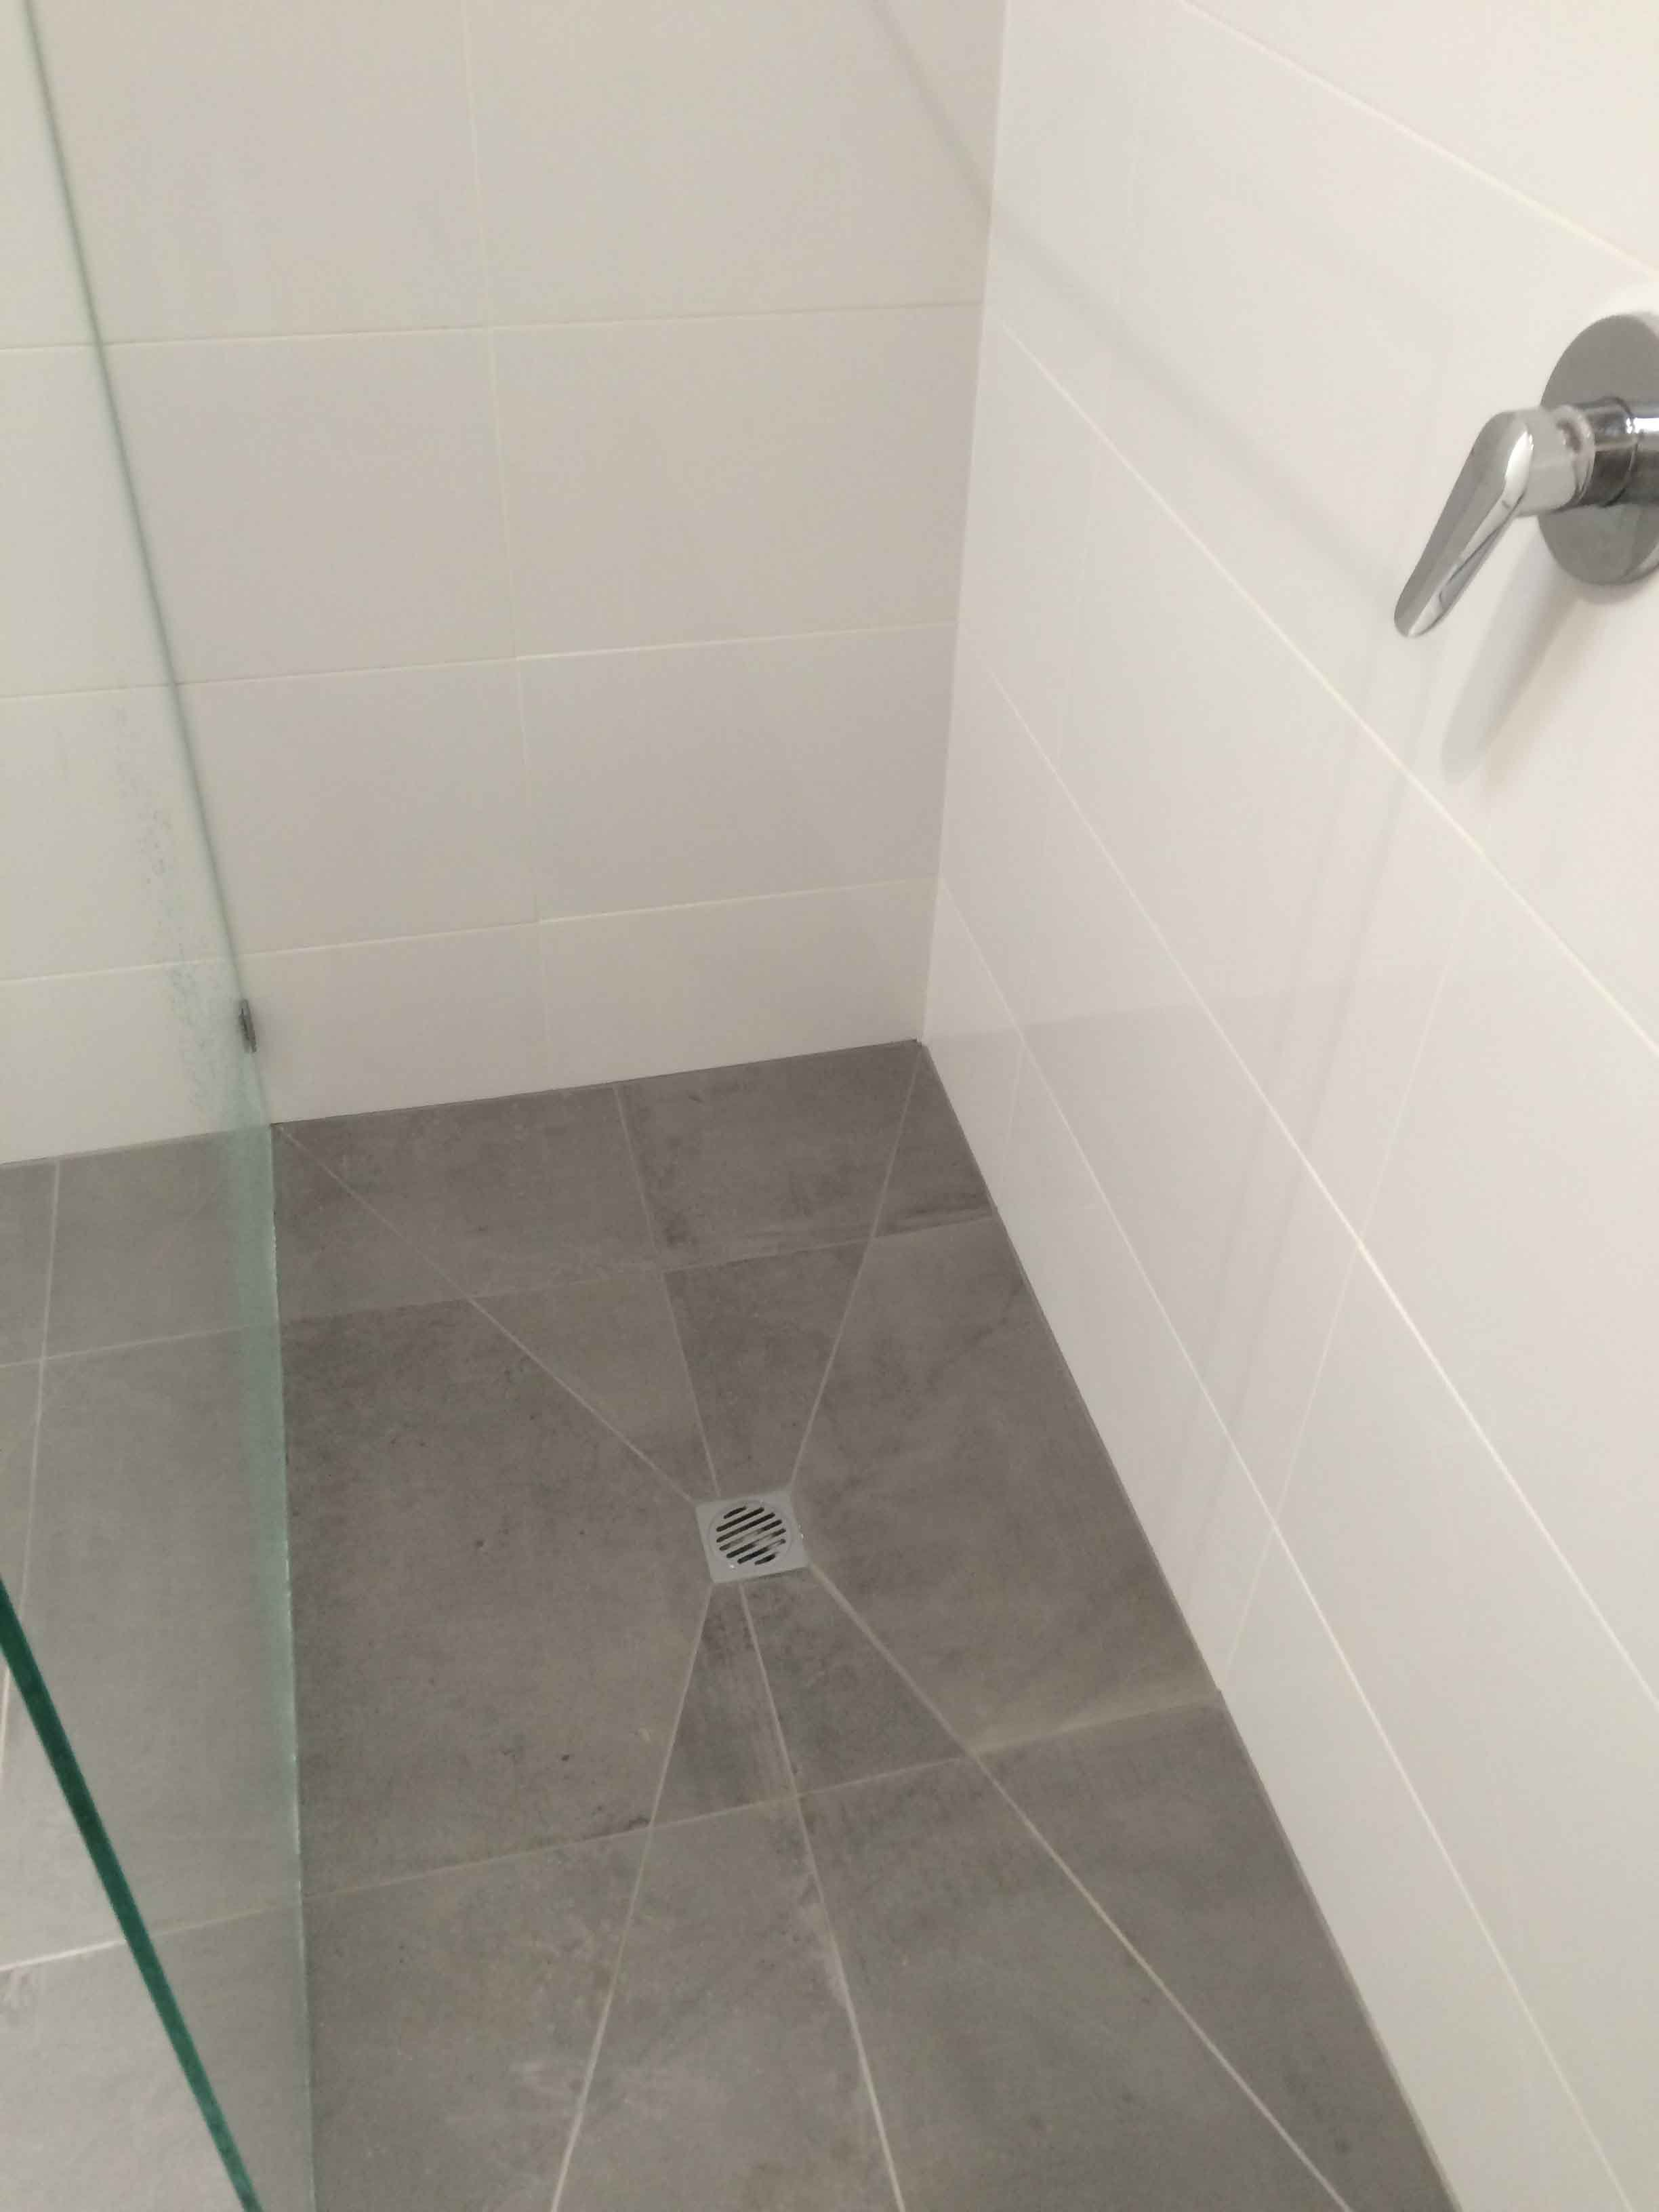 View of a bathroom tiling work done by expert